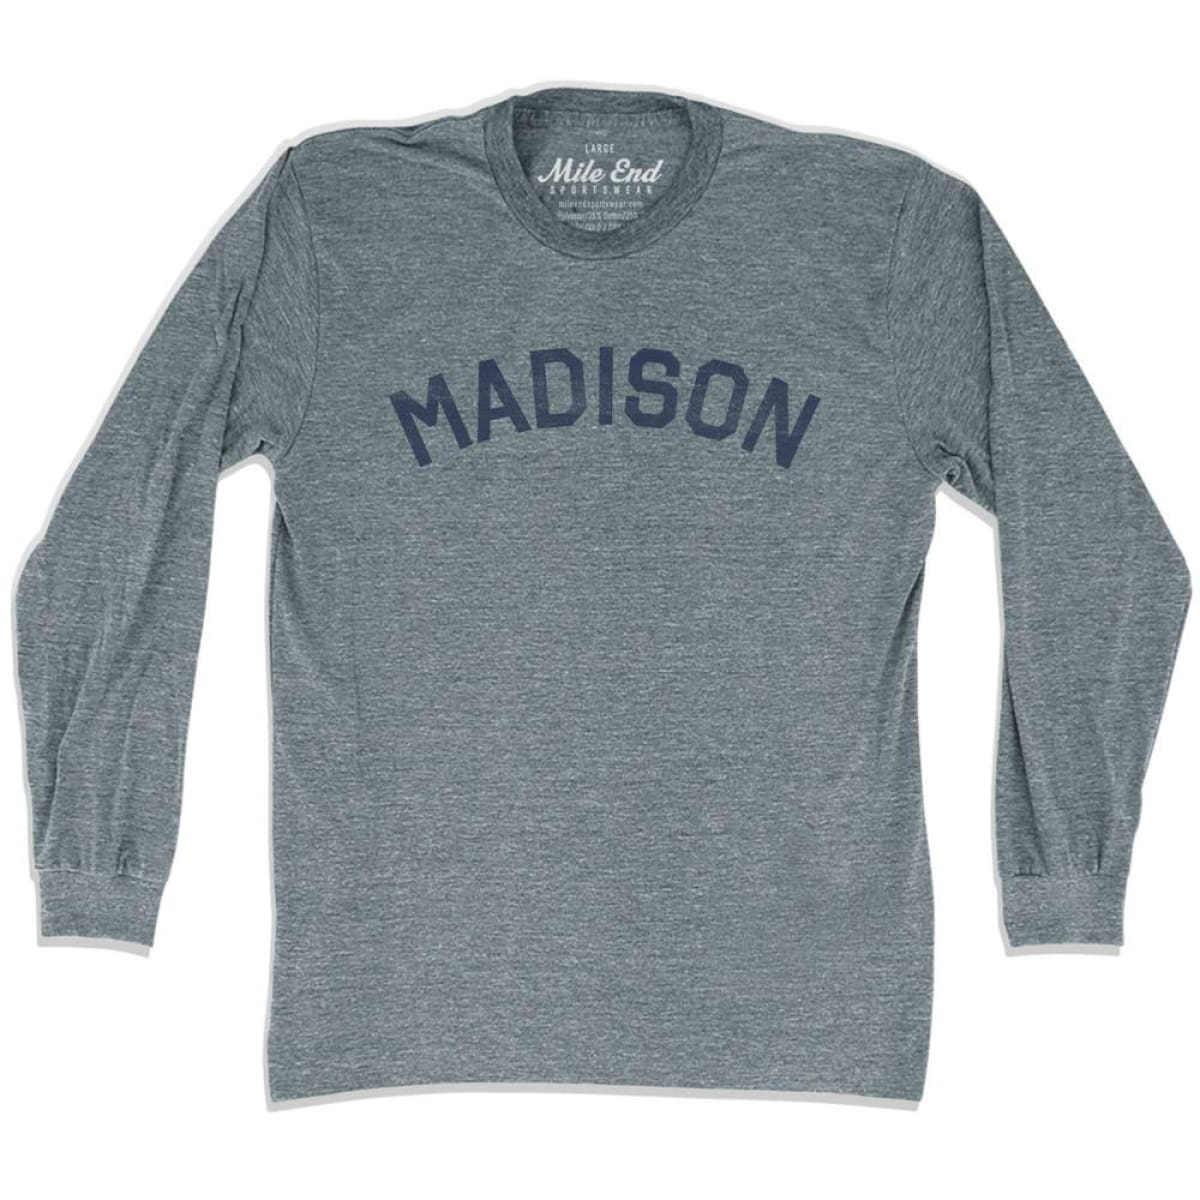 Madison City Vintage Long Sleeve T-Shirt - Athletic Grey / Adult X-Small - Mile End City